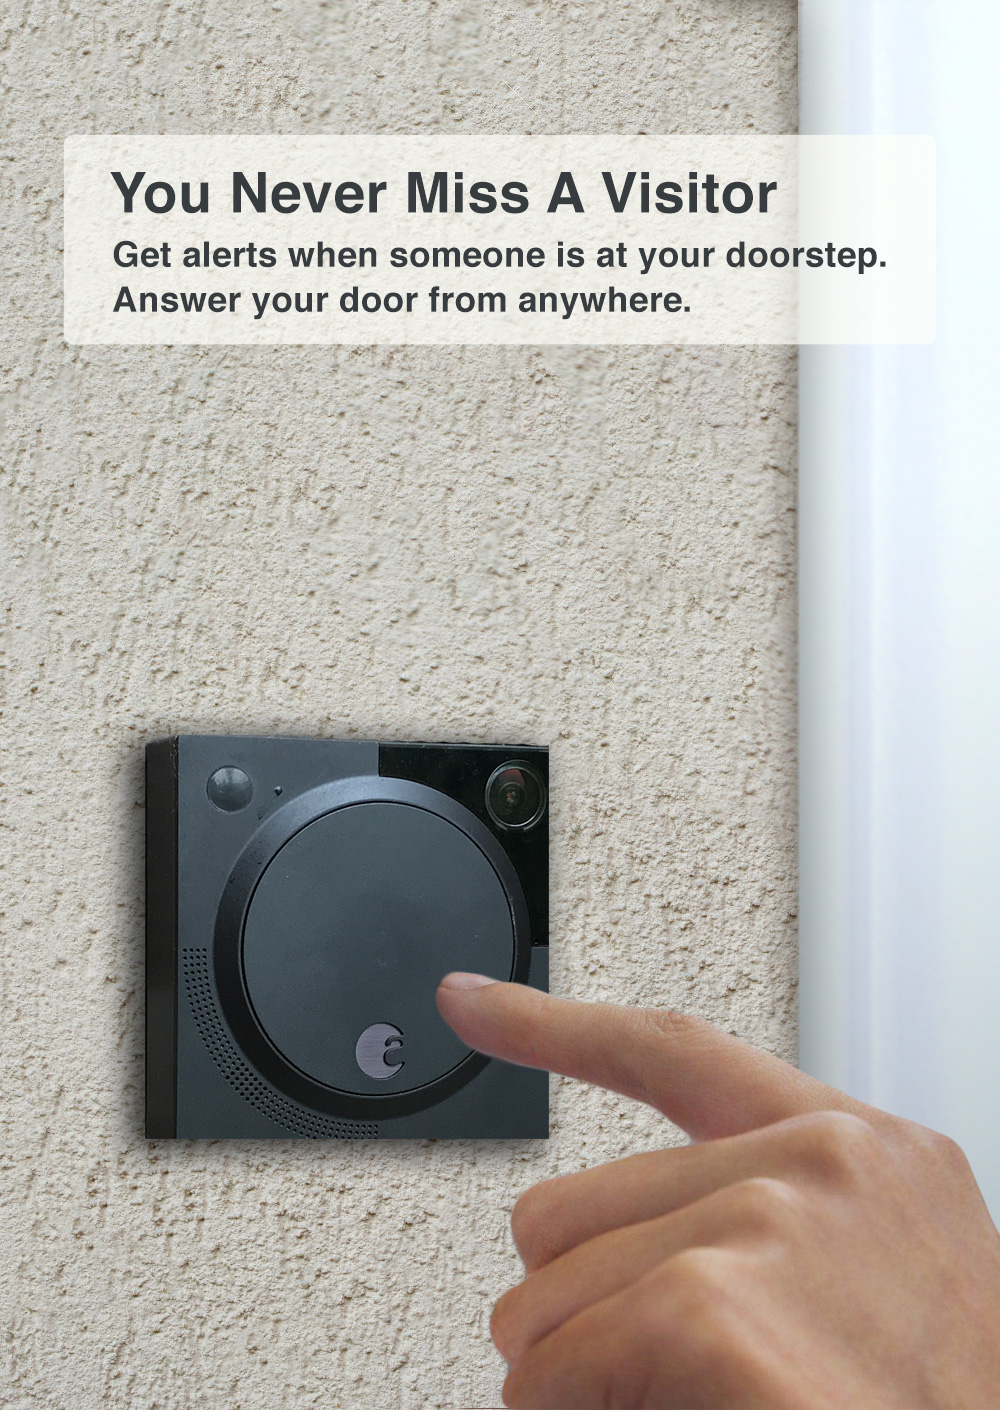 Control and watch the front door video recordings with a smart doorbell.